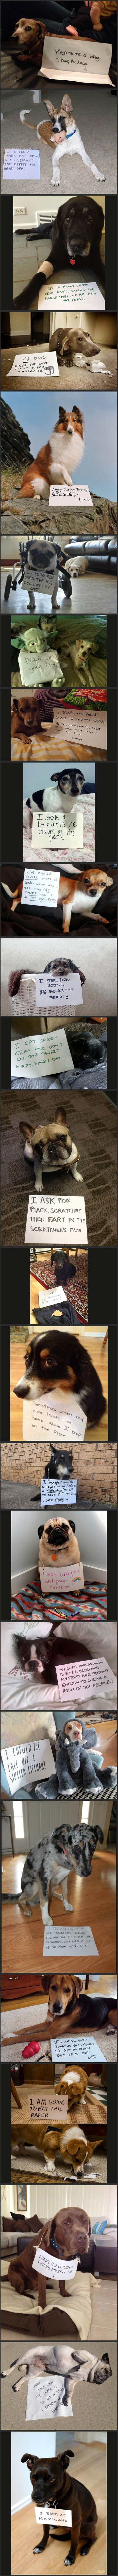 The best of dog shaming!: Funny Animals, Dog Shame, Dog Shaming, Animal Shame, Bad Dog, Funny Dogs Hilarious, So Funny, Dog Confession